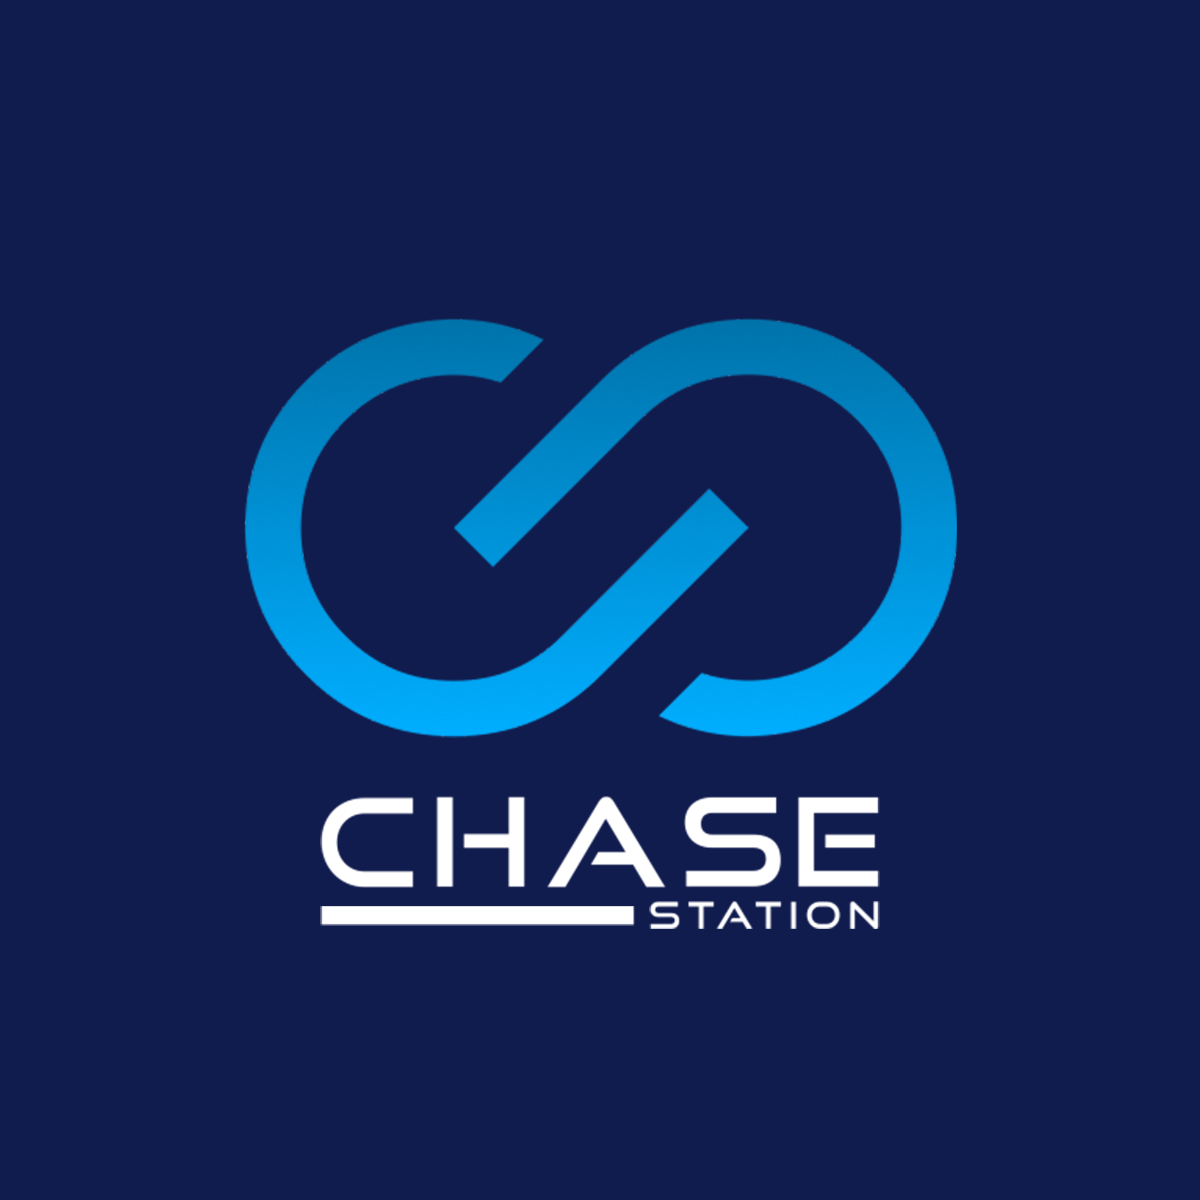 Chase Station